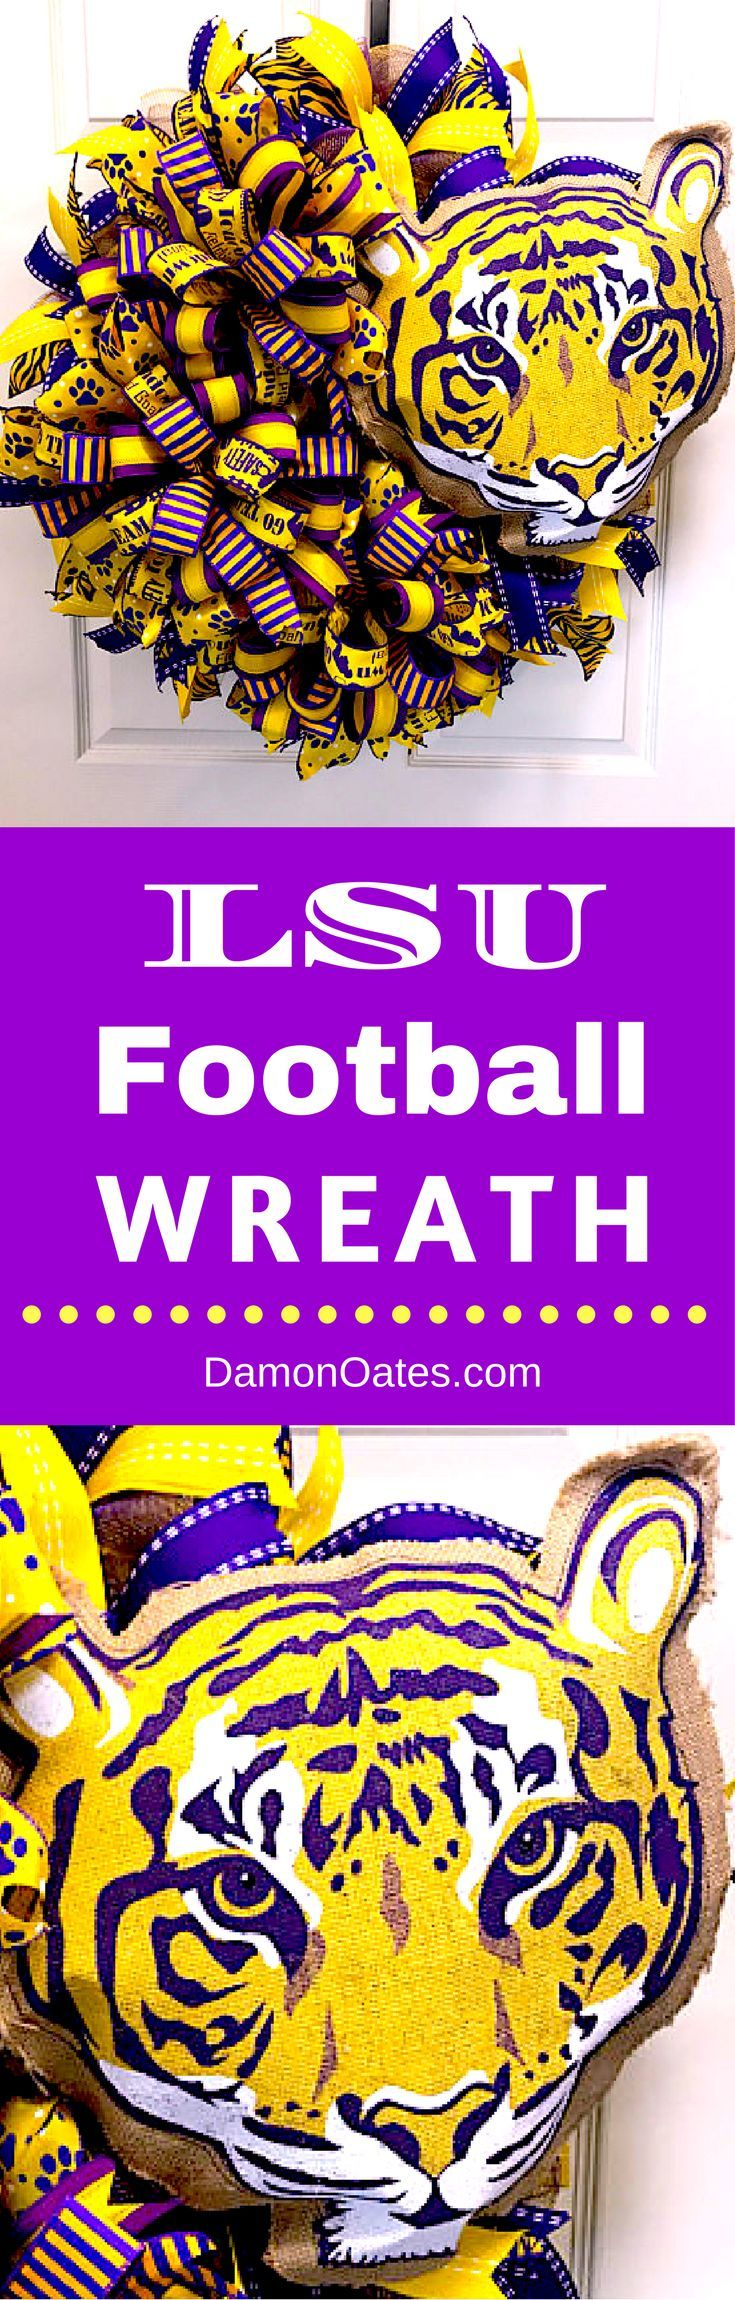 LSU College Football Wreath. Home decor for your front door by DamonOates.com / DecoExchange